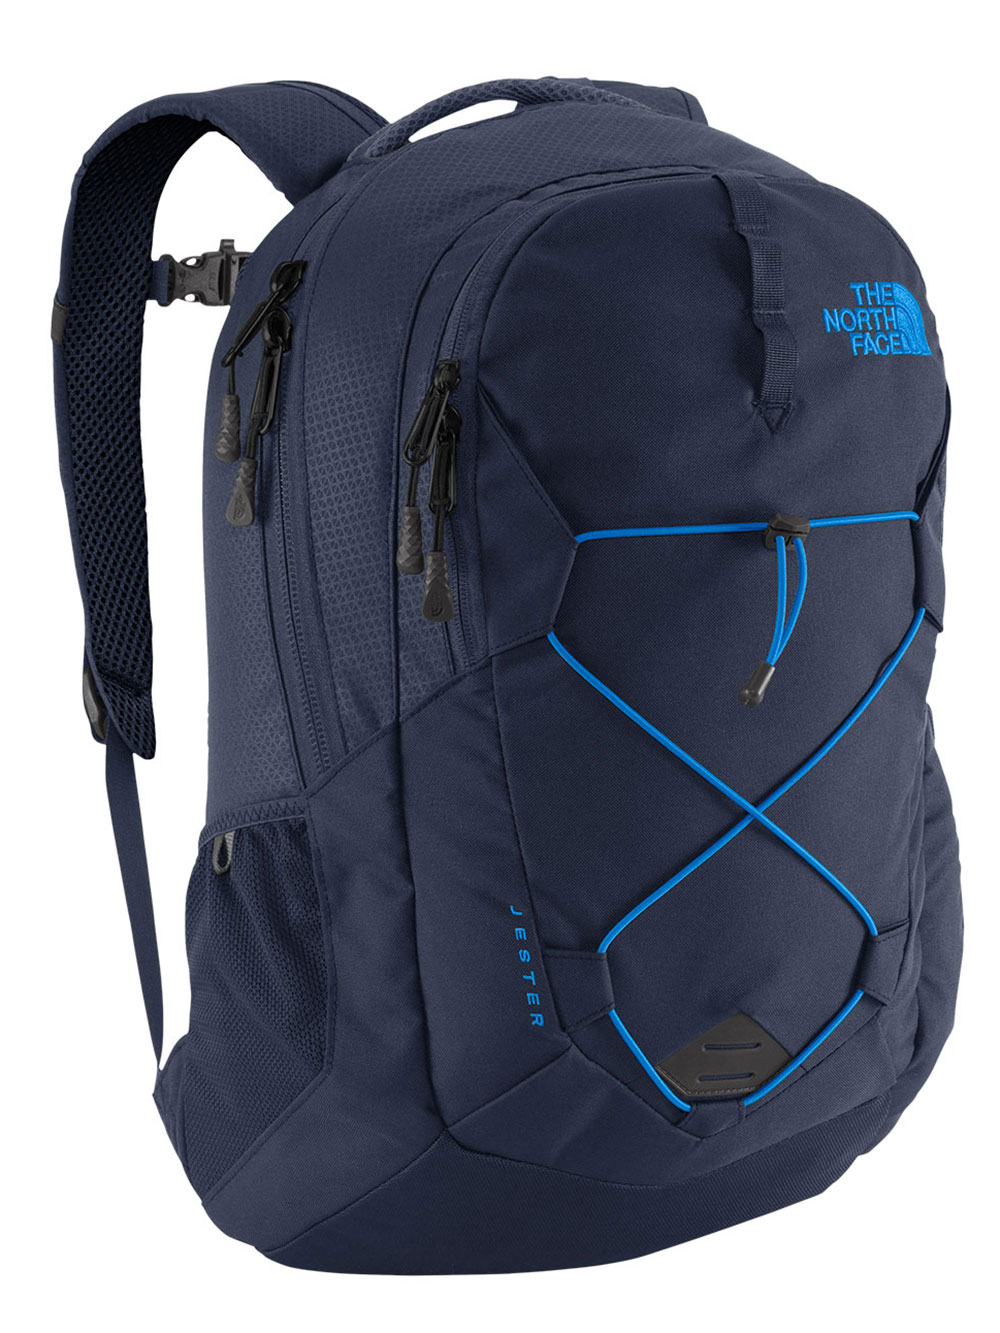 The North Face Jester Backpack - cosmic blue/bomber blue, one size